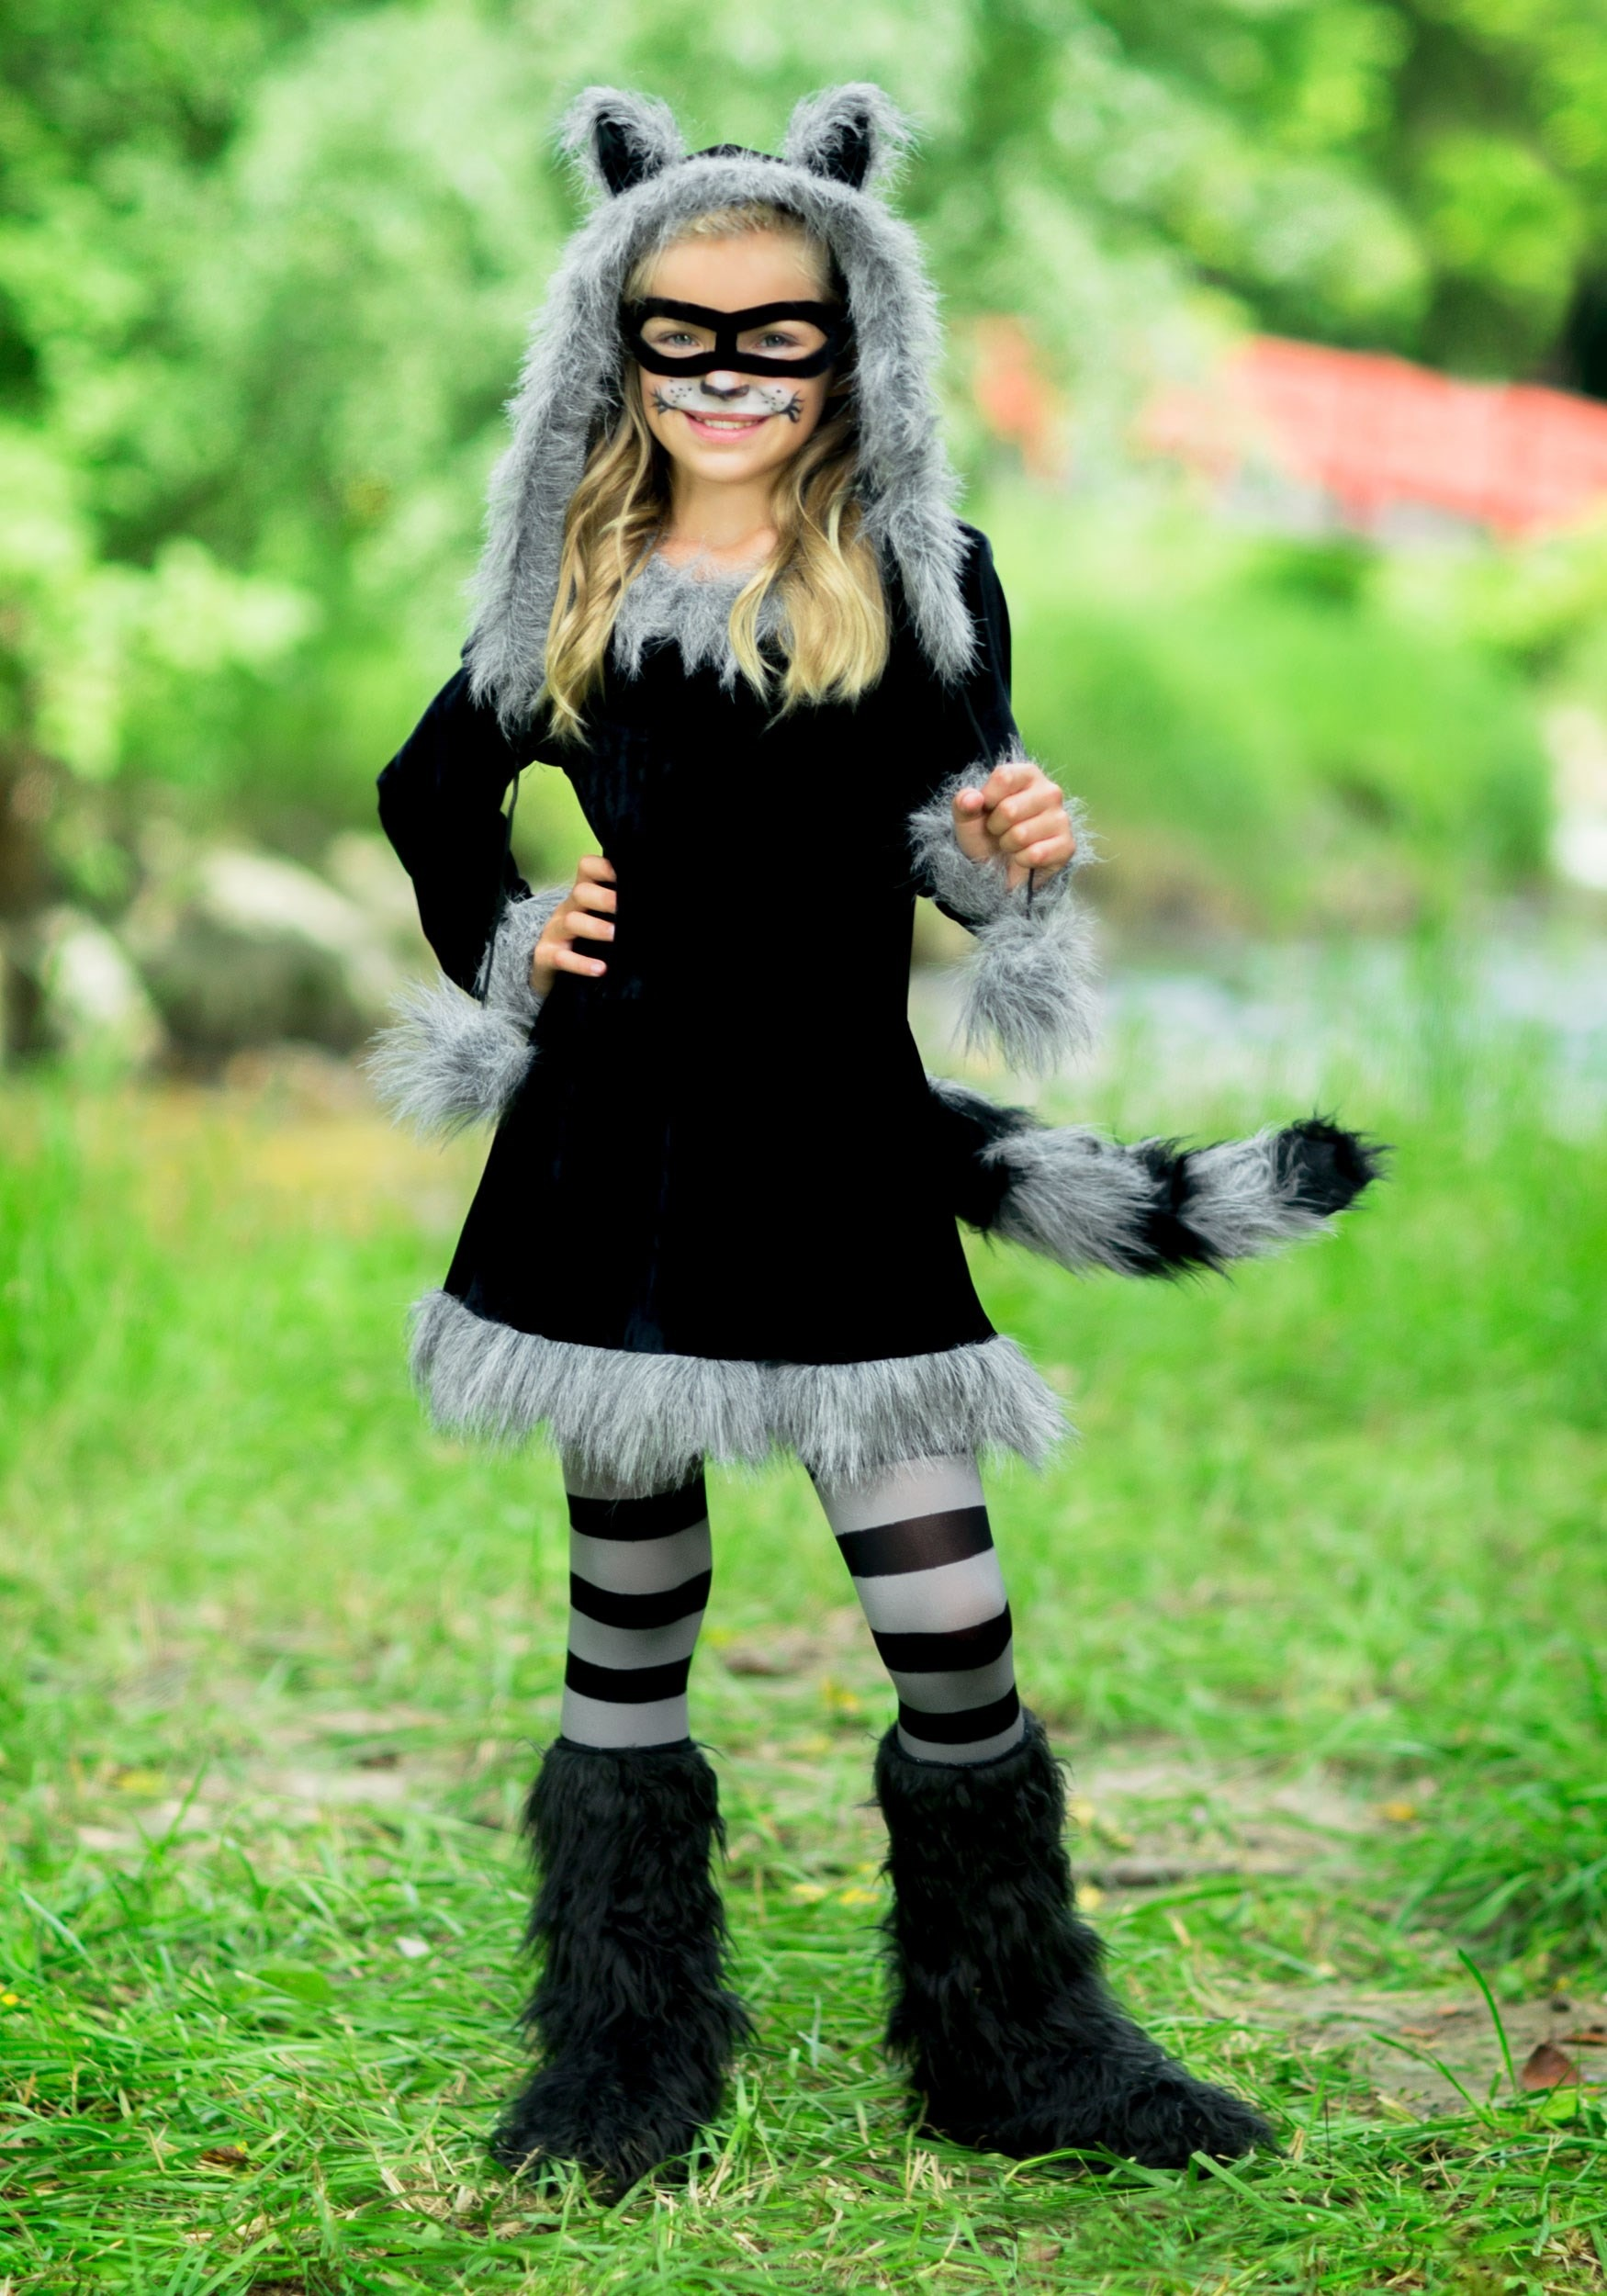 Raccoon Costumes - Adult, Sexy Raccoon Costume Ideas